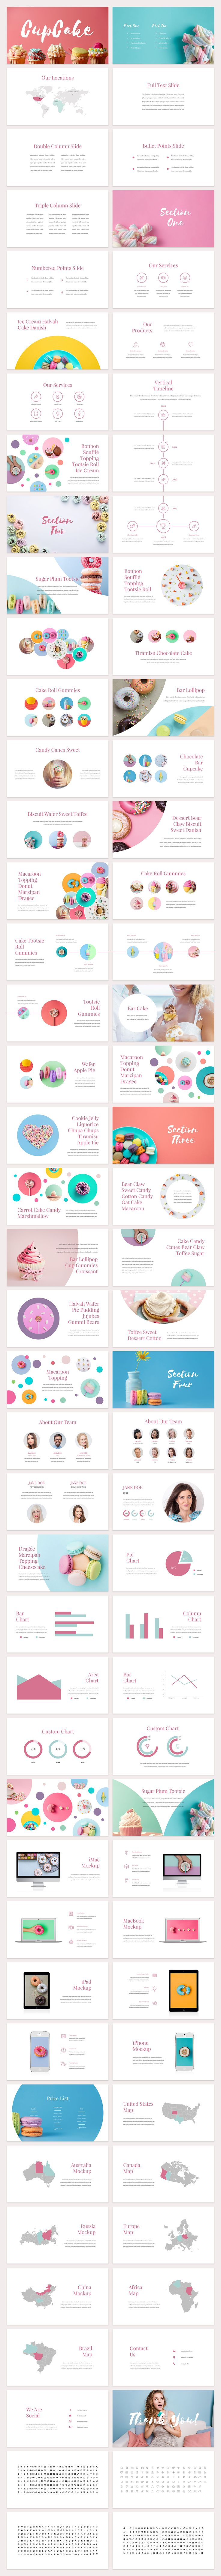 CupCake PowerPoint Template by SlideStation on @creativemarket